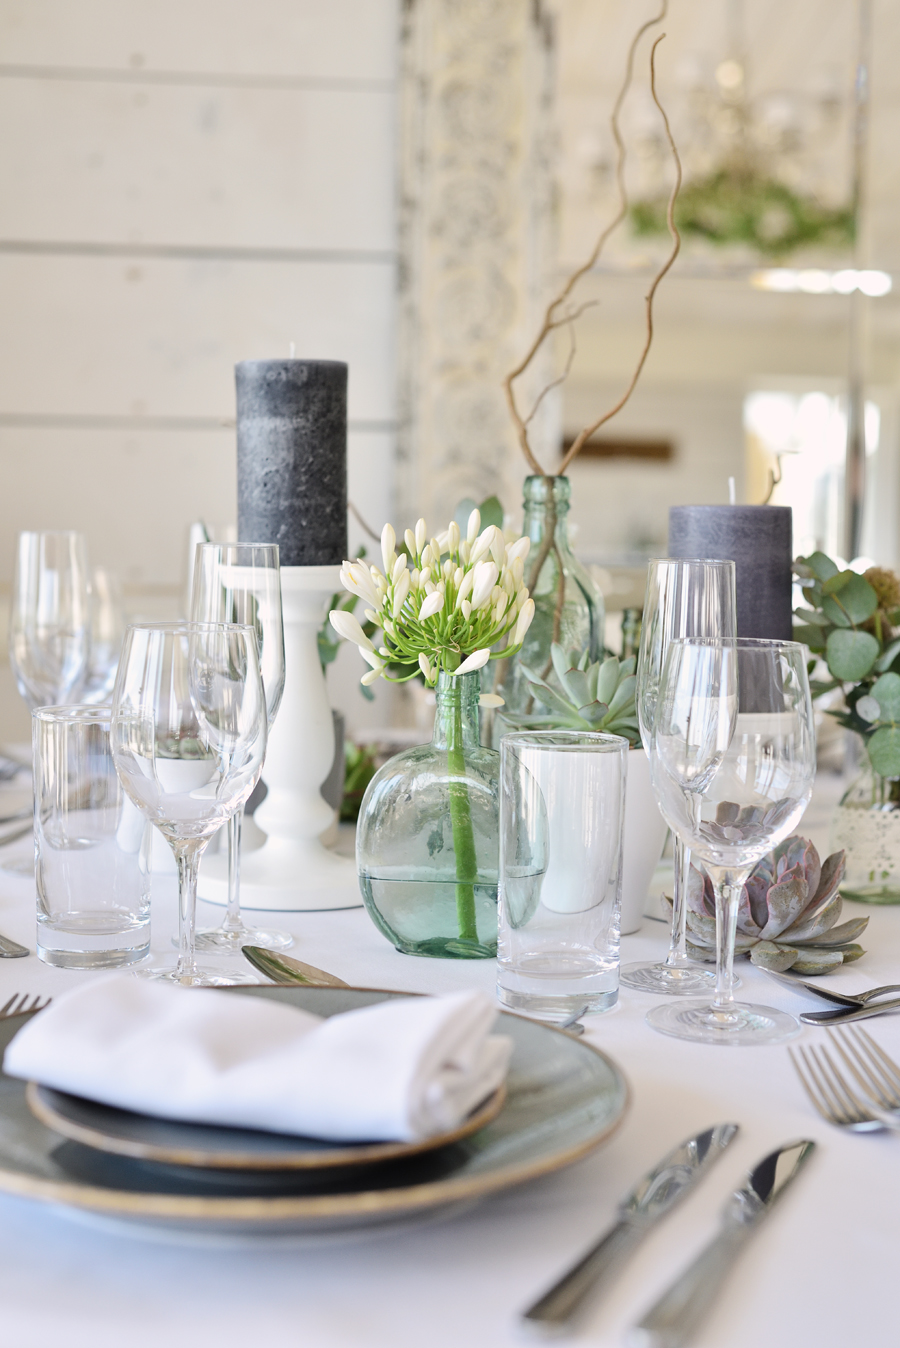 Marina Walker Photography's styled shoot with succulents and affordable details for a minimalist boho wedding (10)